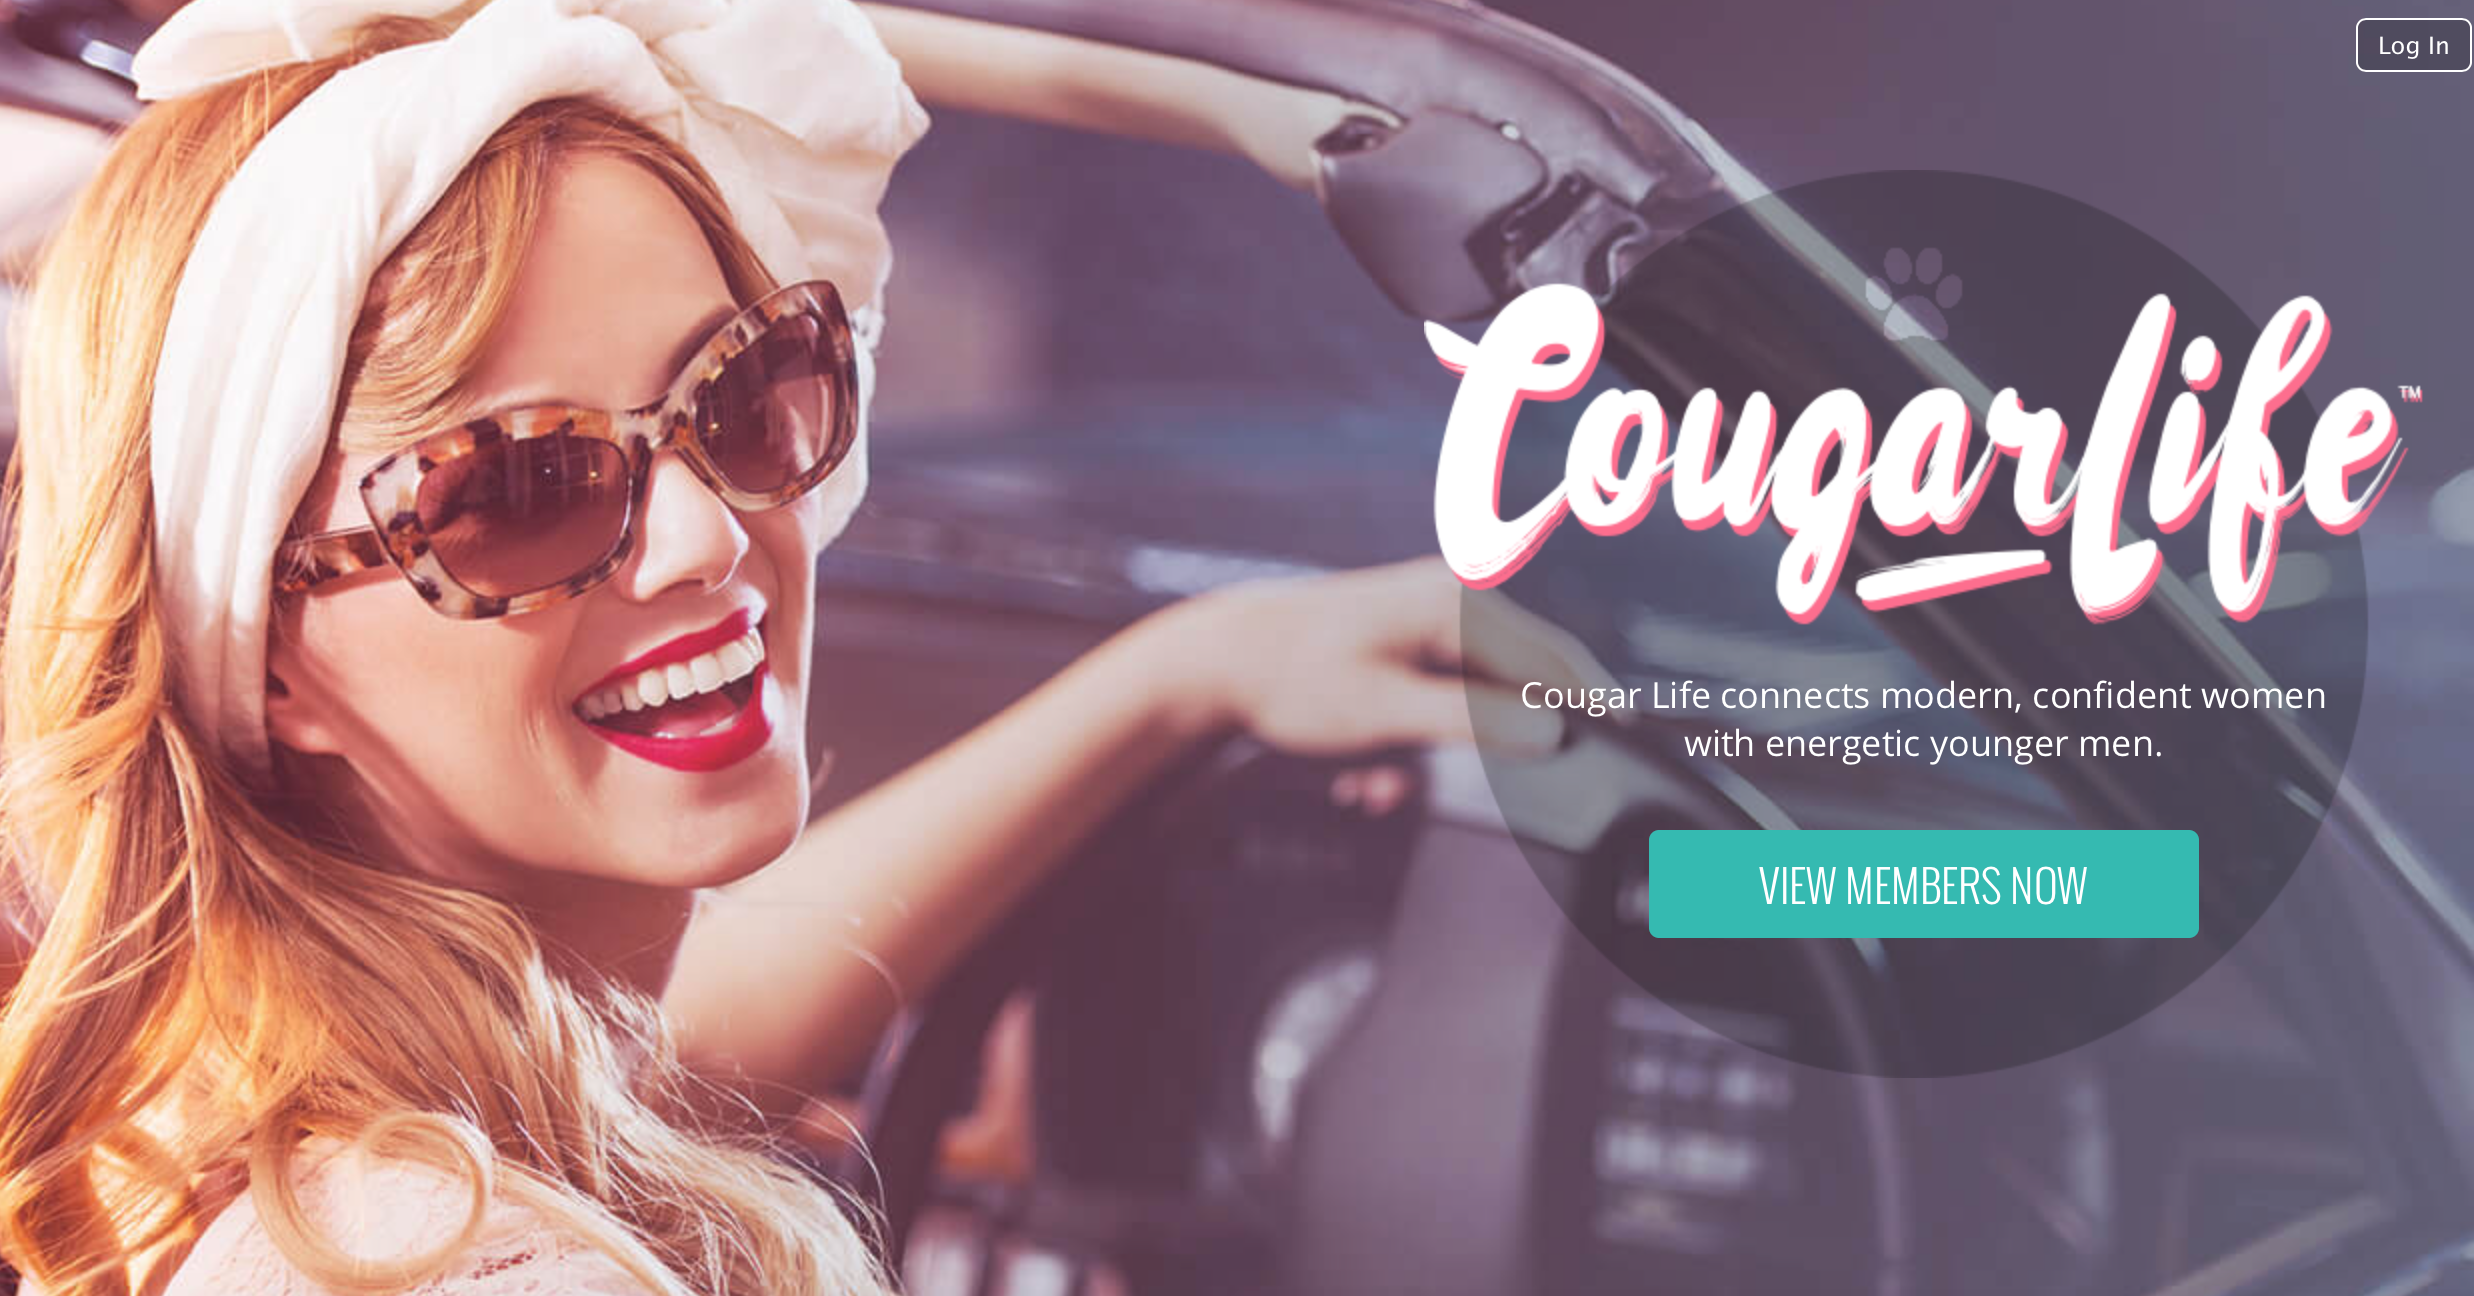 wauseon cougars dating site Send pictures to cougarsmaturewomensexymoms@hotmailcom if cougars, mature women & sexy moms is on facebook to connect with cougars women dating.